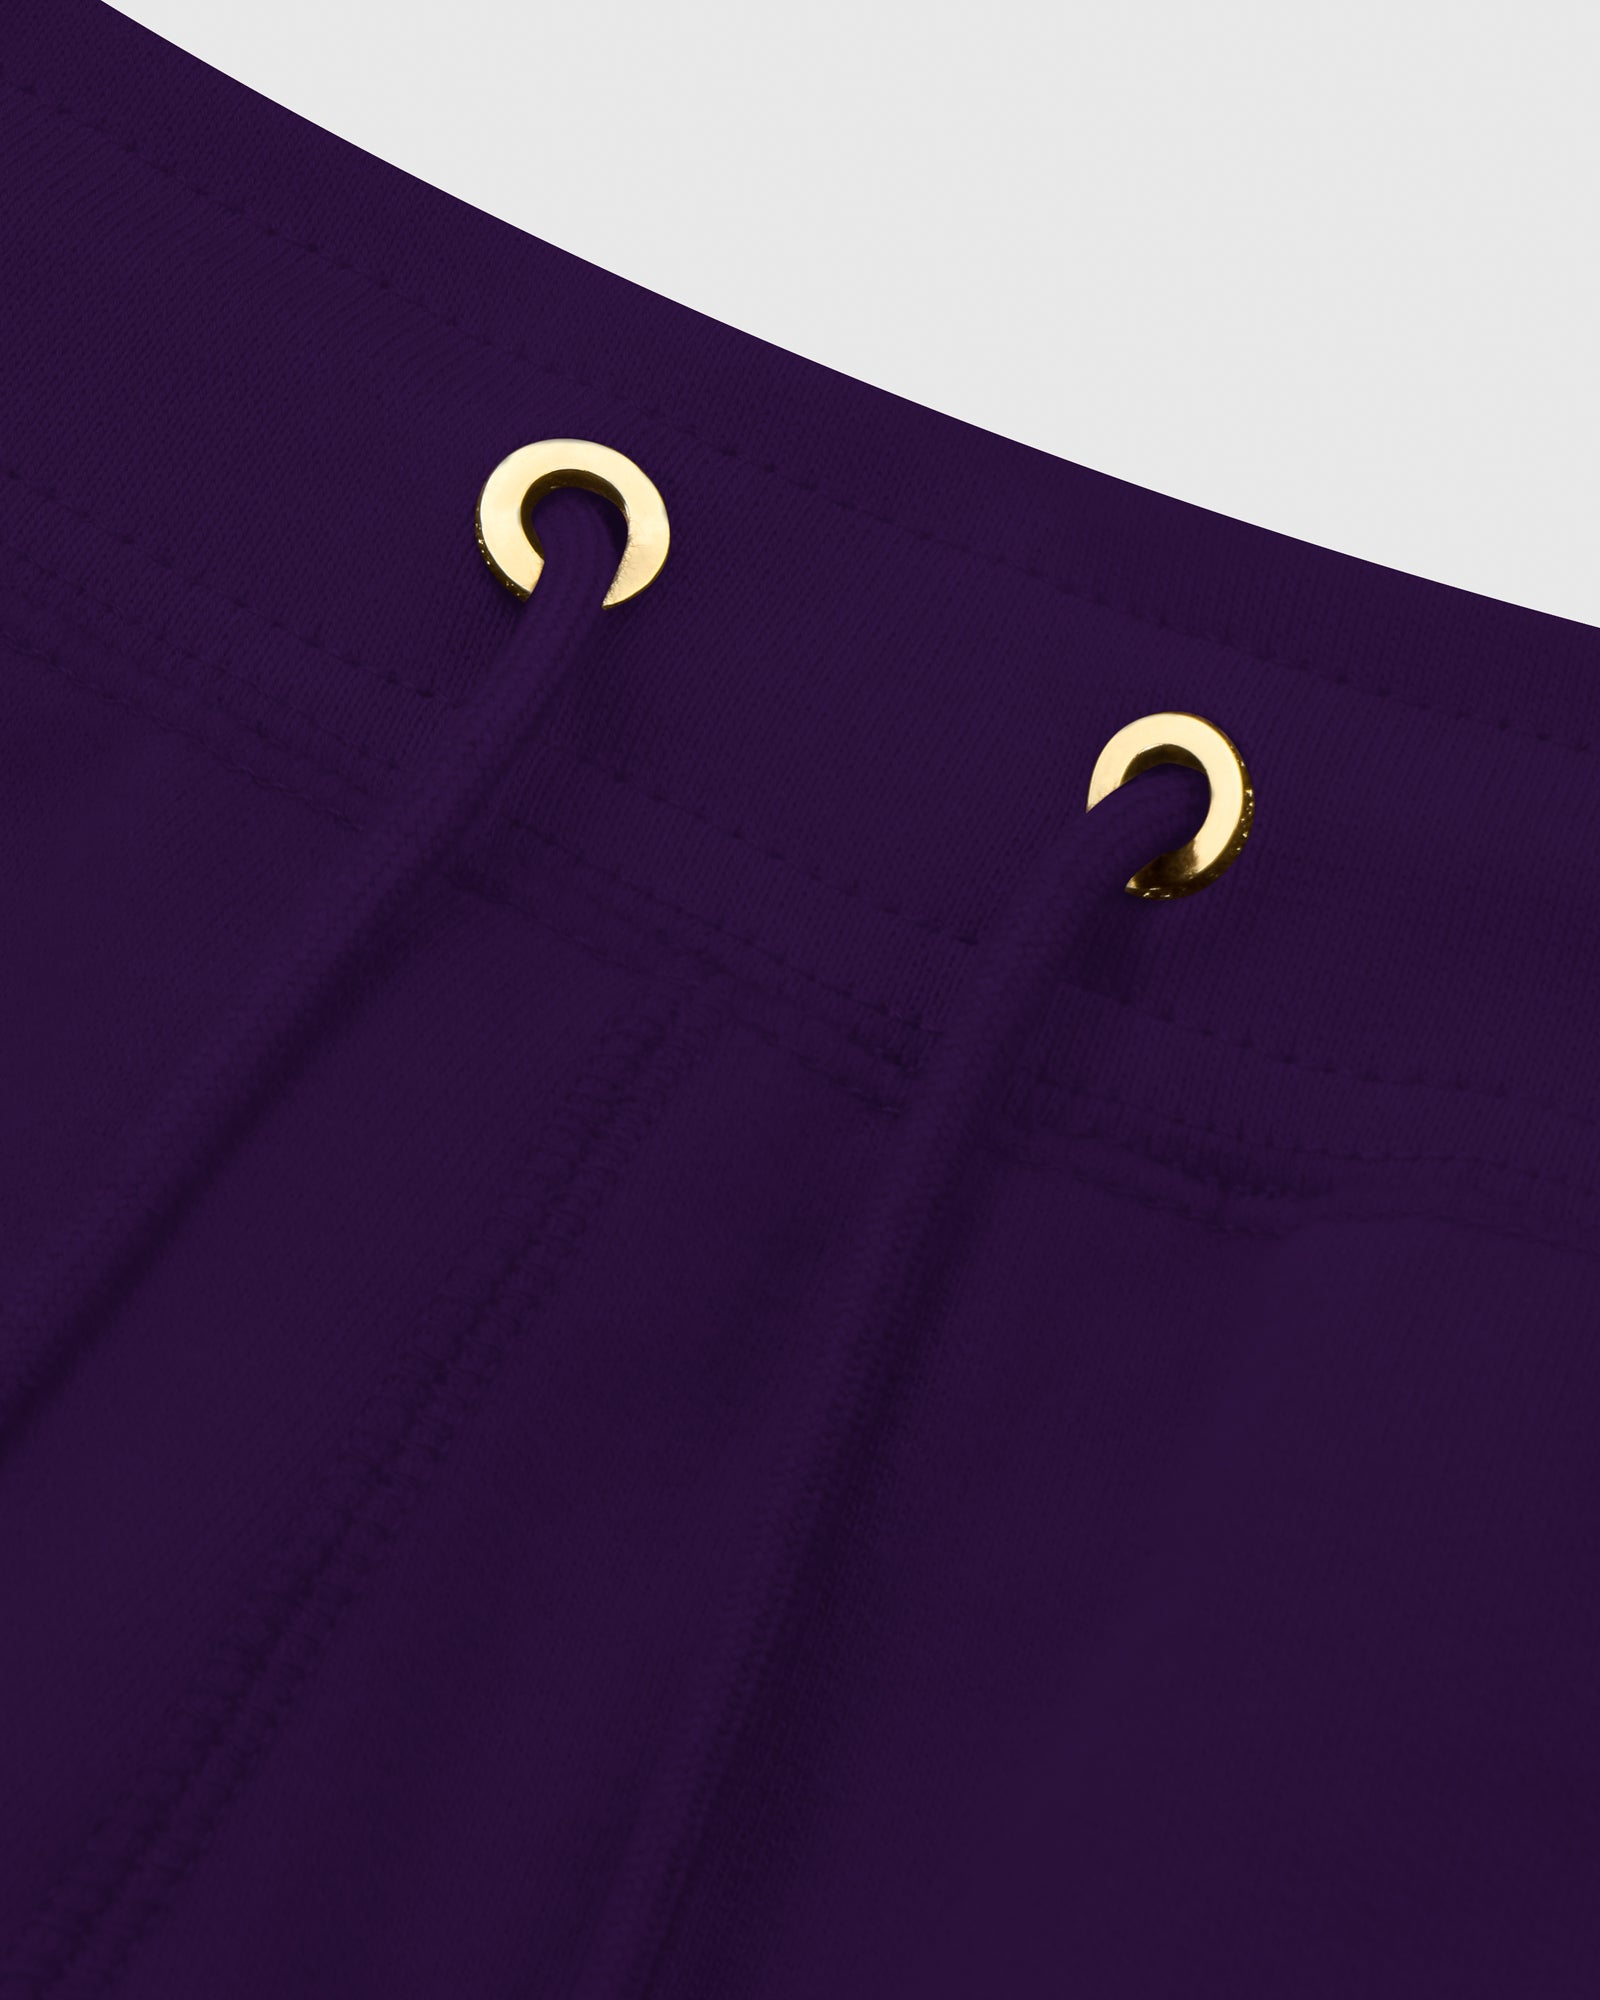 MID-WEIGHT FRENCH TERRY SWEATPANT - PURPLE